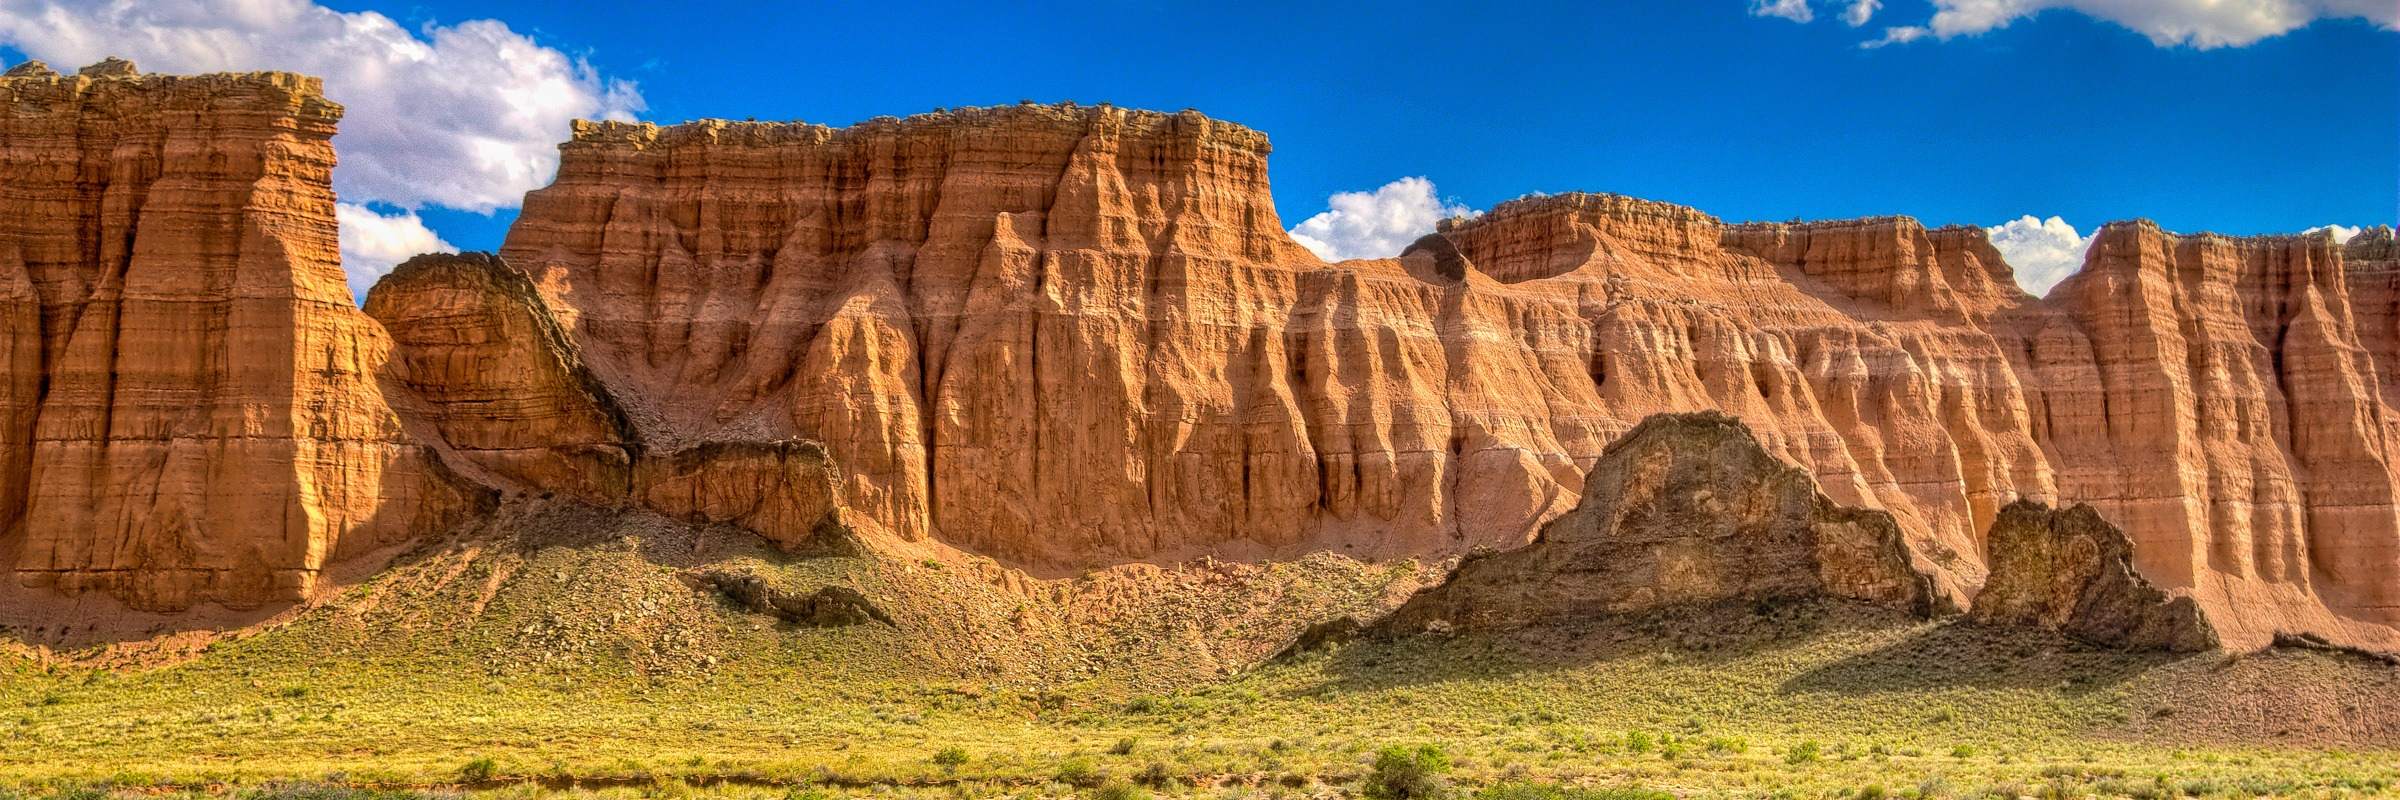 Lava dyke along Caineville Wash Road in Capitol Reef National Park.